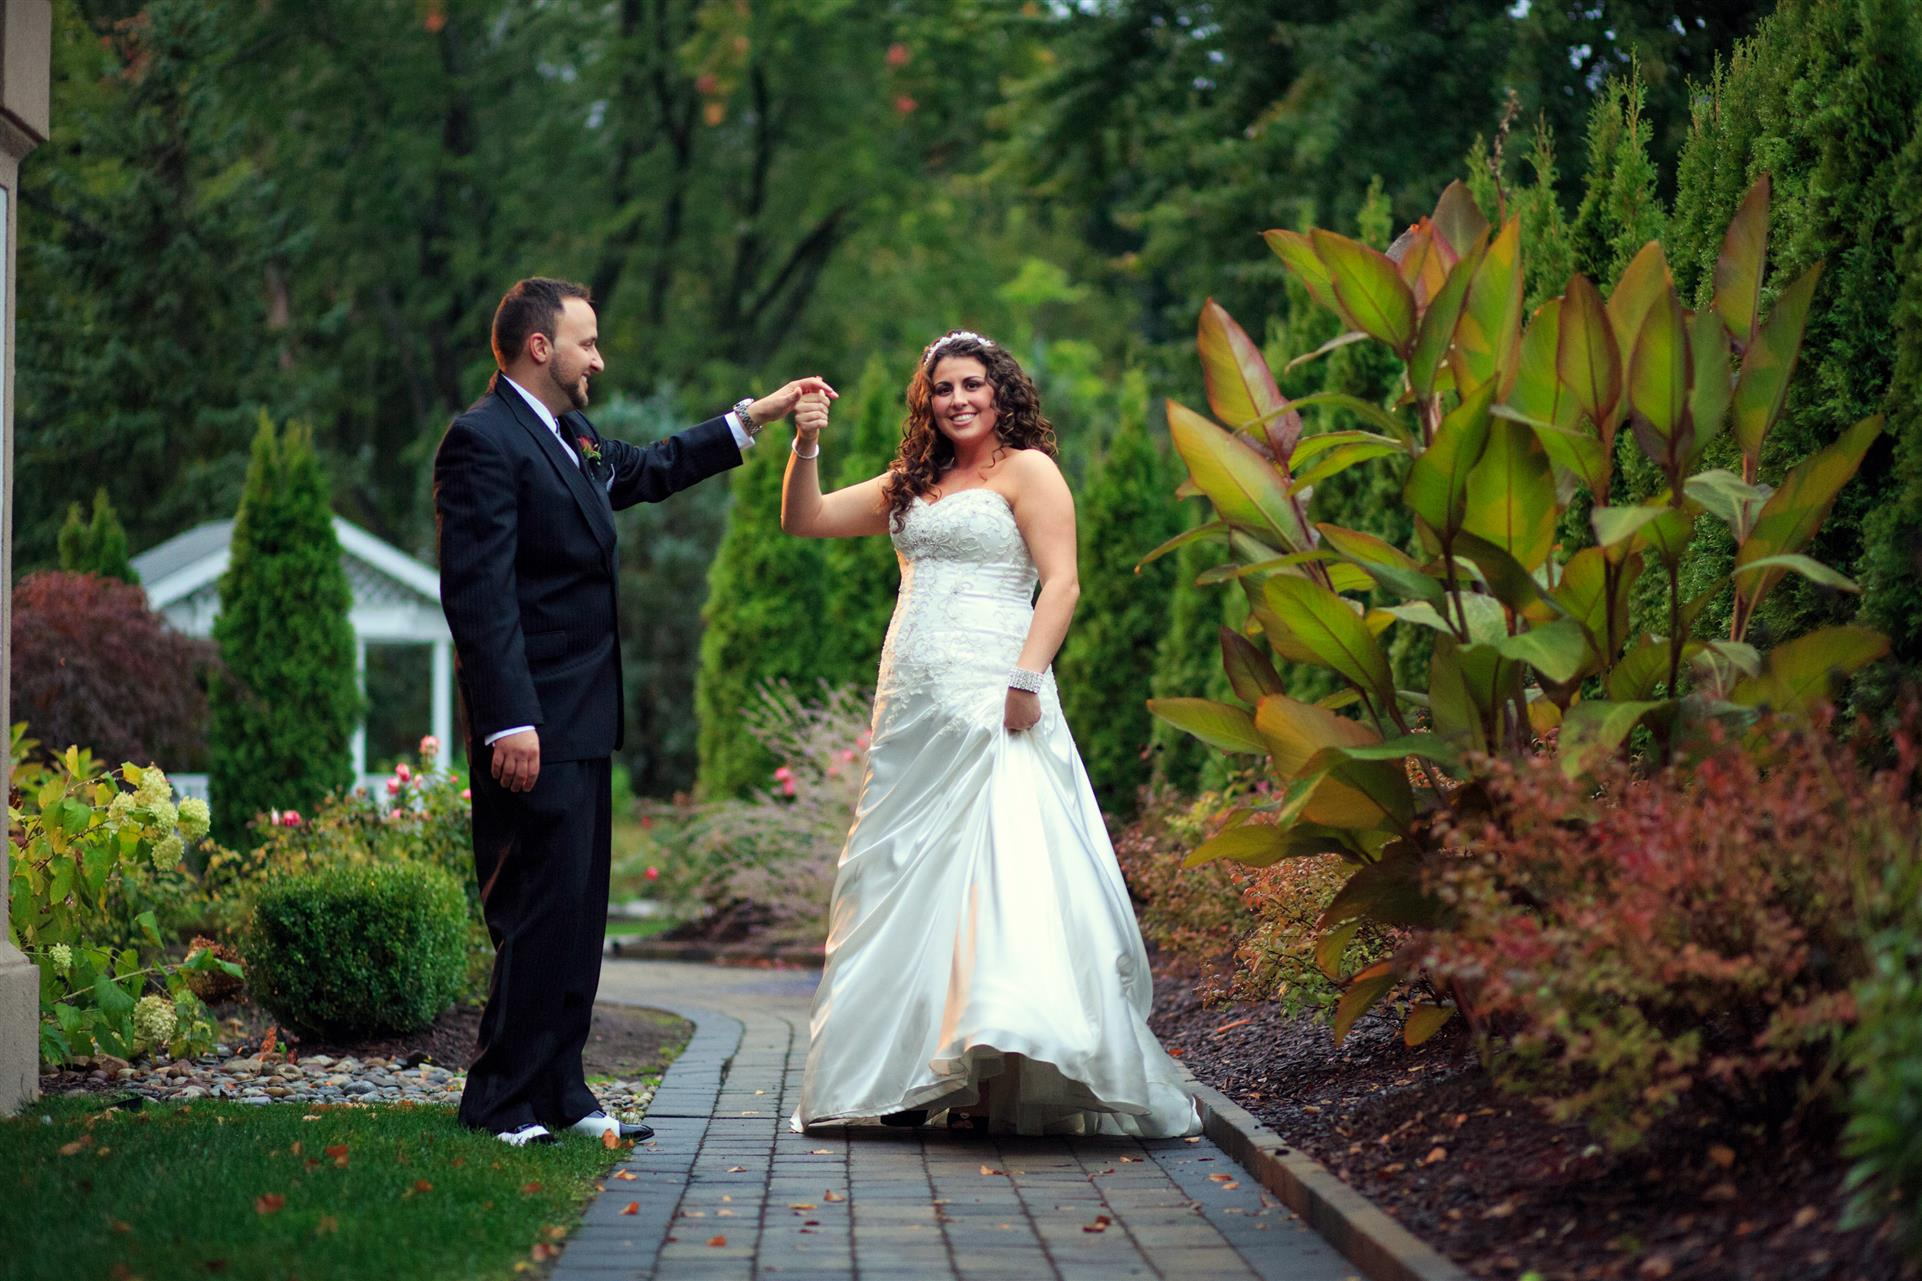 Bride and groom holding hands on walkway